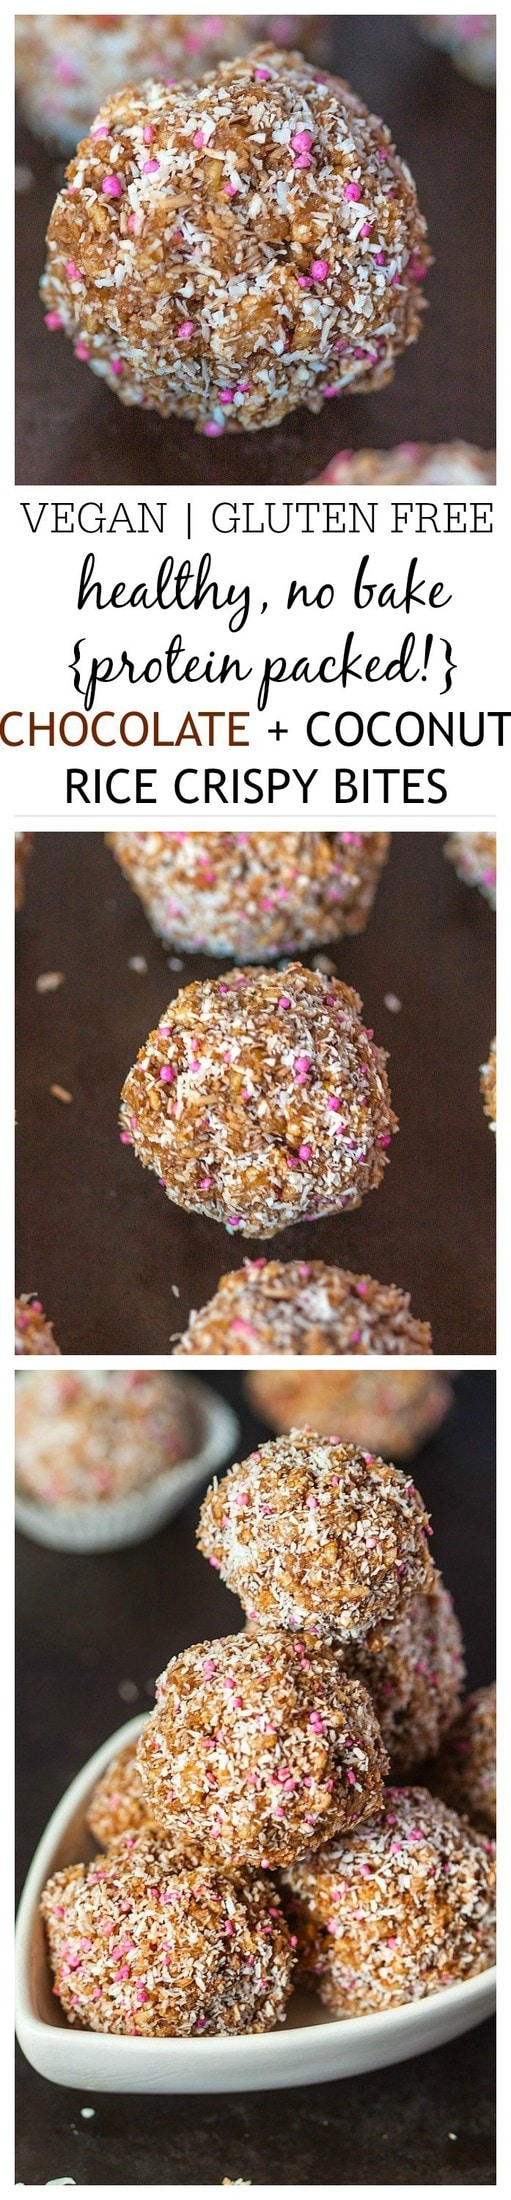 Healthy Chocolate Coconut {Protein Packed!} Rice Crispy Bites- A High protein, sugar free and portable snack- Perfect fuel in between meals or as a pre or post workout boost! Vegan, gluten free, dairy free and refined sugar free! @thebigmansworld - thebigmansworld.com